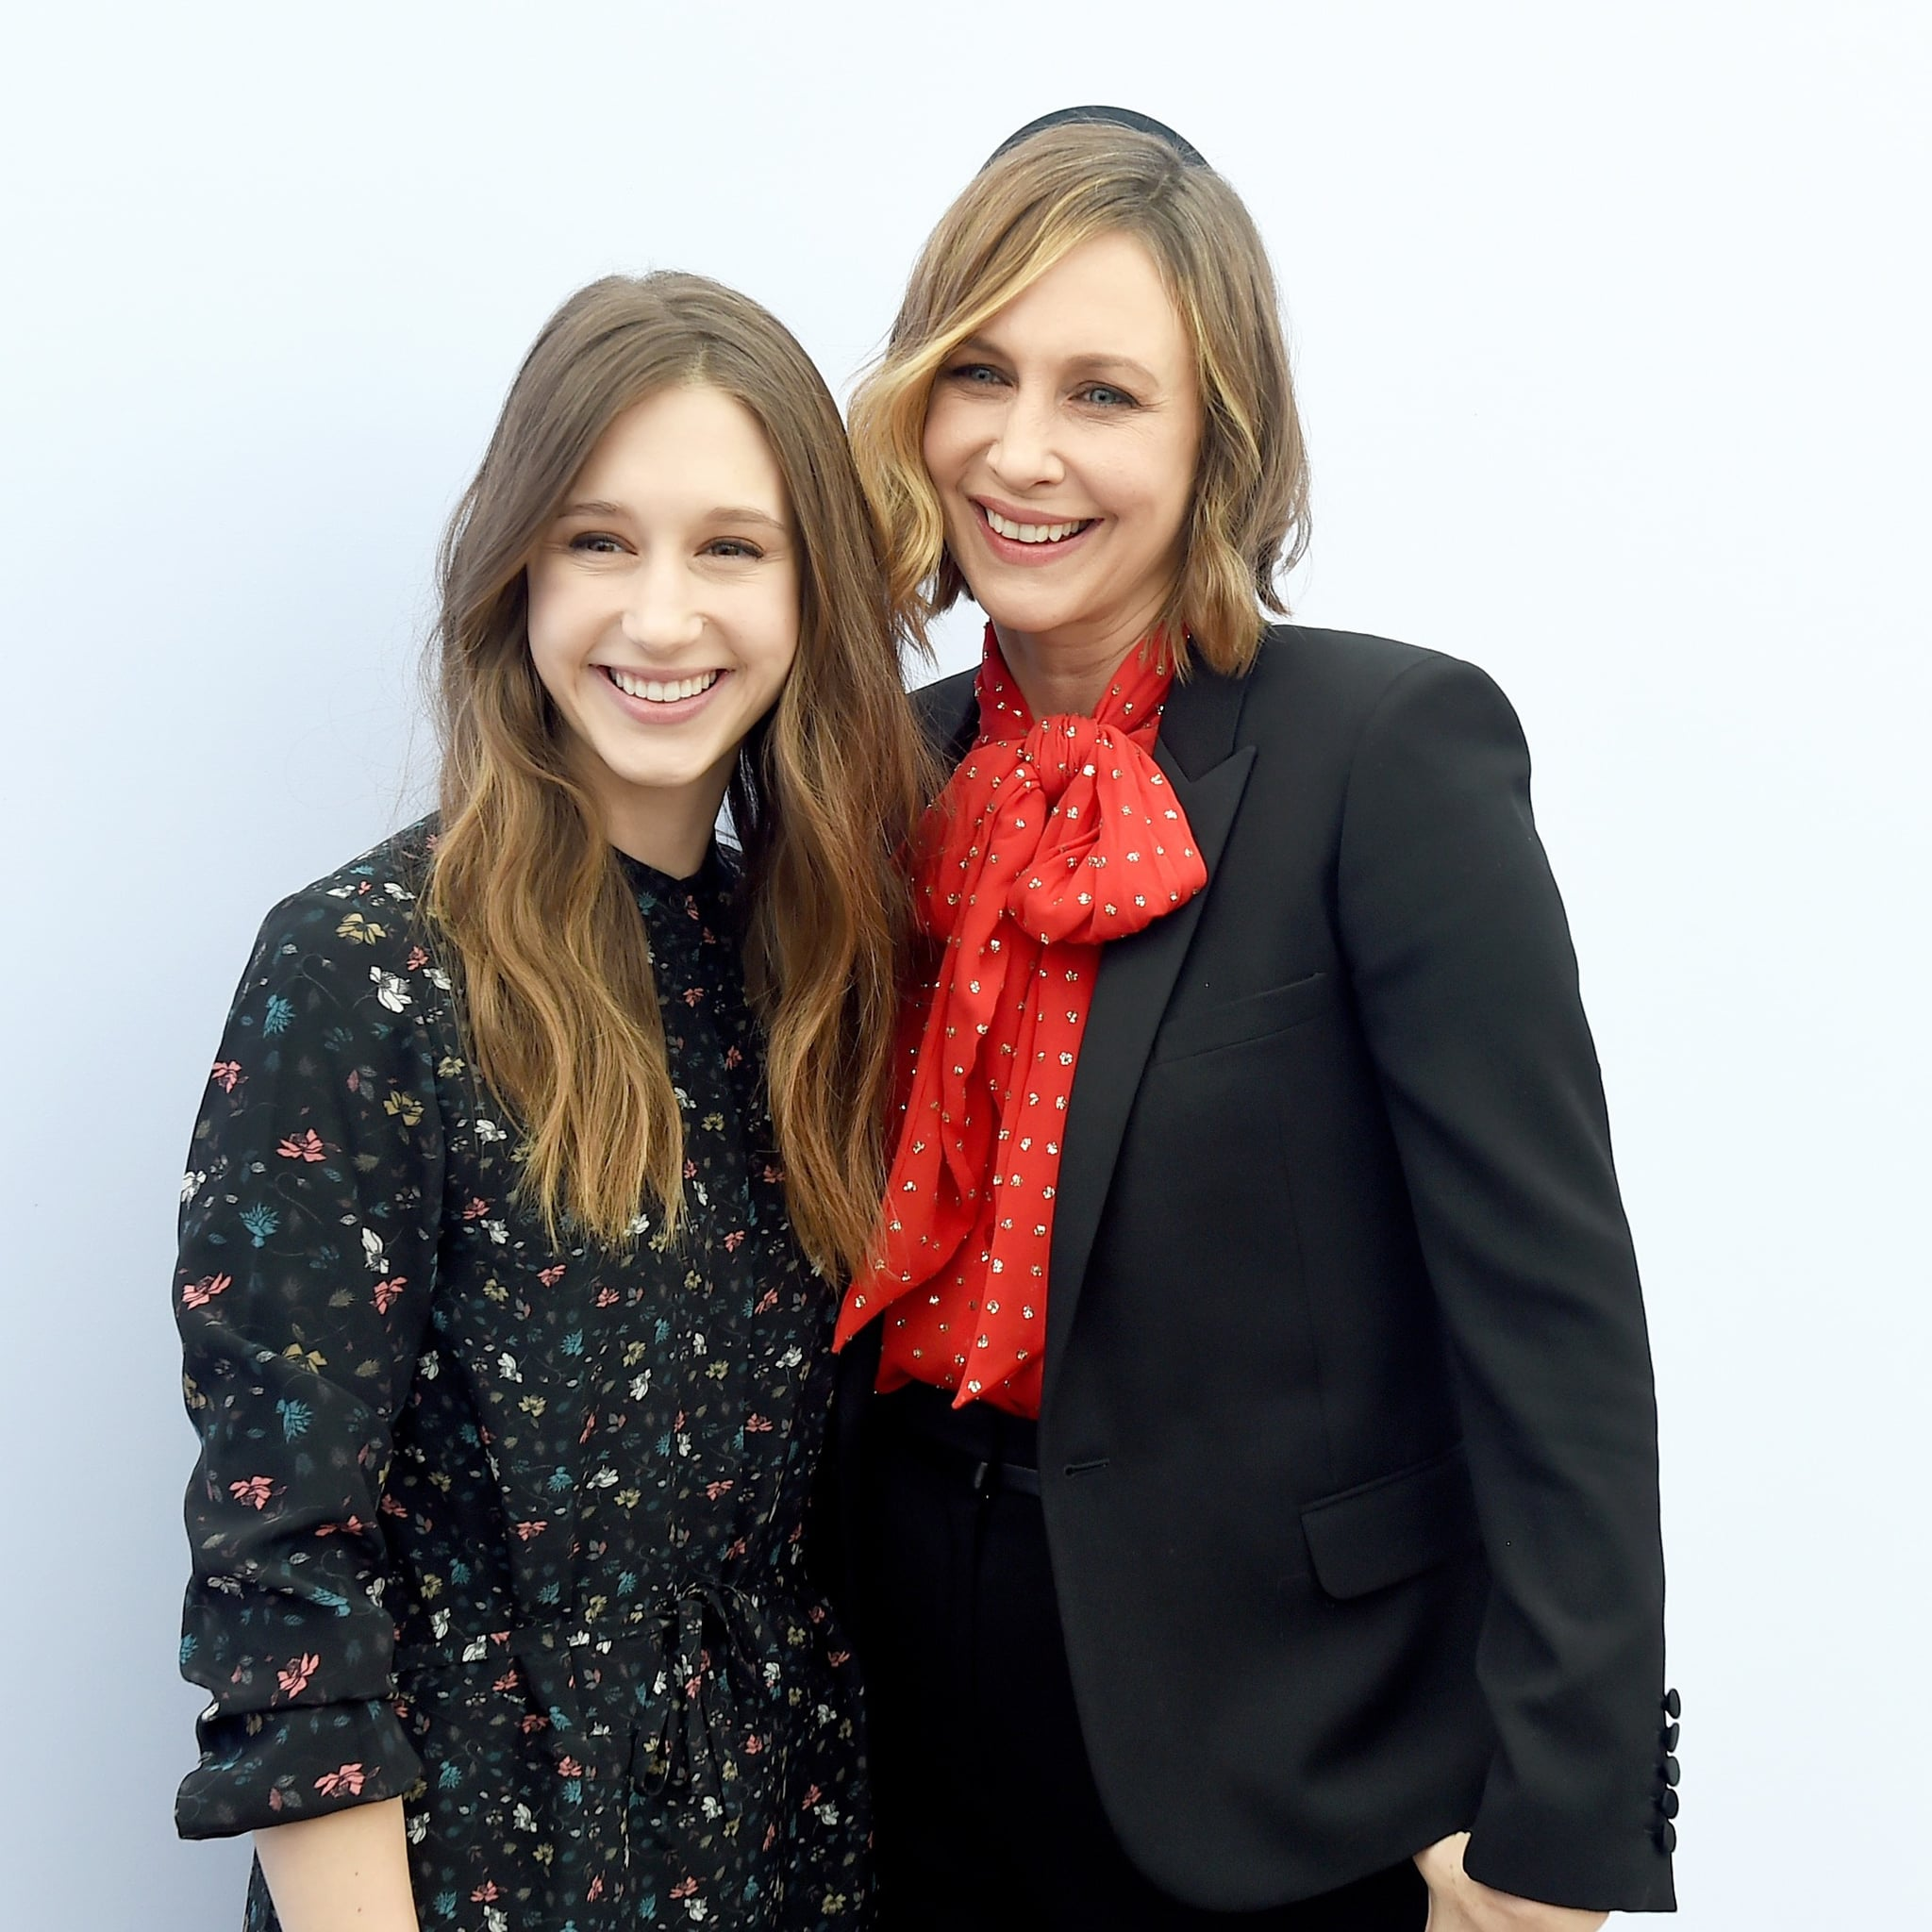 Laryssa Farmiga's sisters Vera and Taissa Farmiga